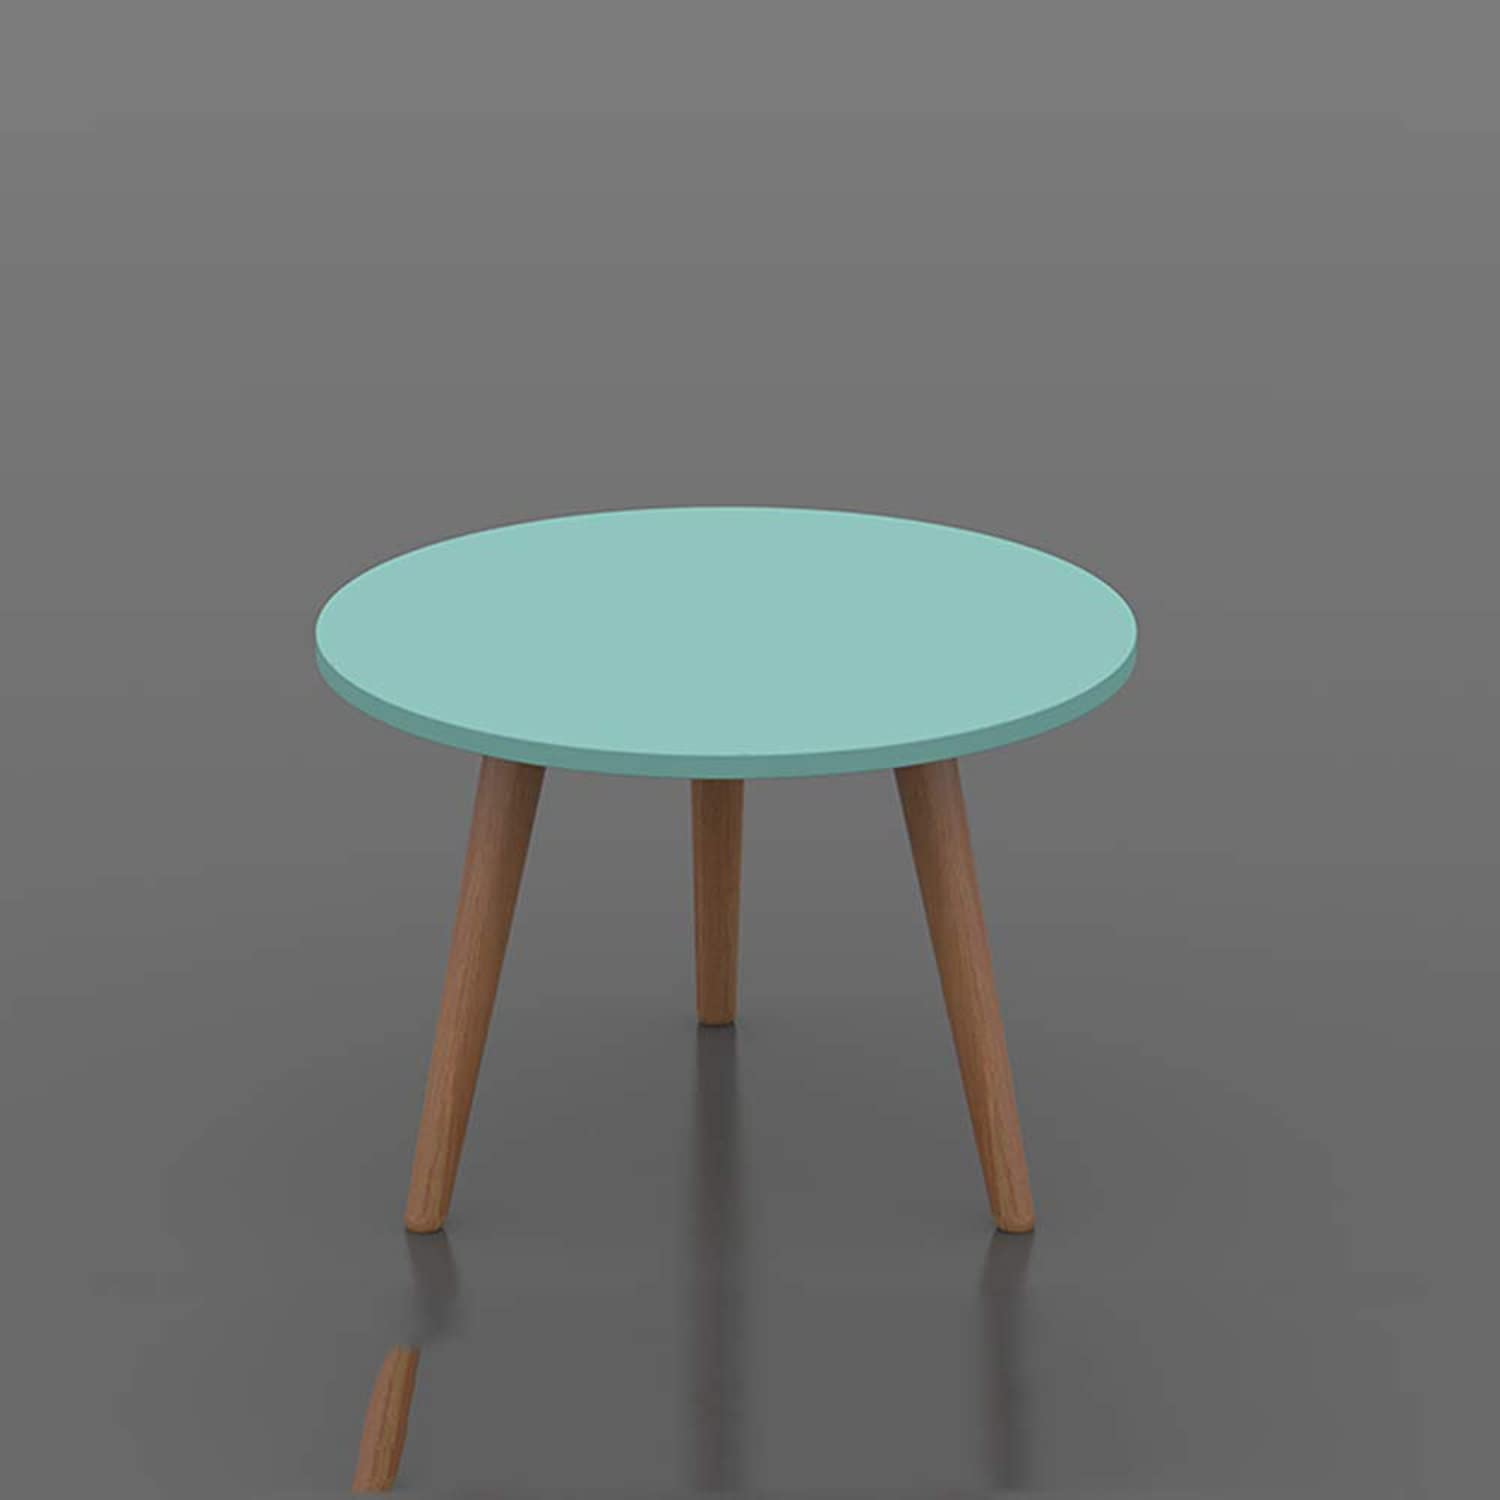 HPLL Laptop Table Triangle Side Coffee Table, Round Simple Modern Triangular Side Table Office, Kitchen, Living Room (color   2, Size   40  40  29cm)